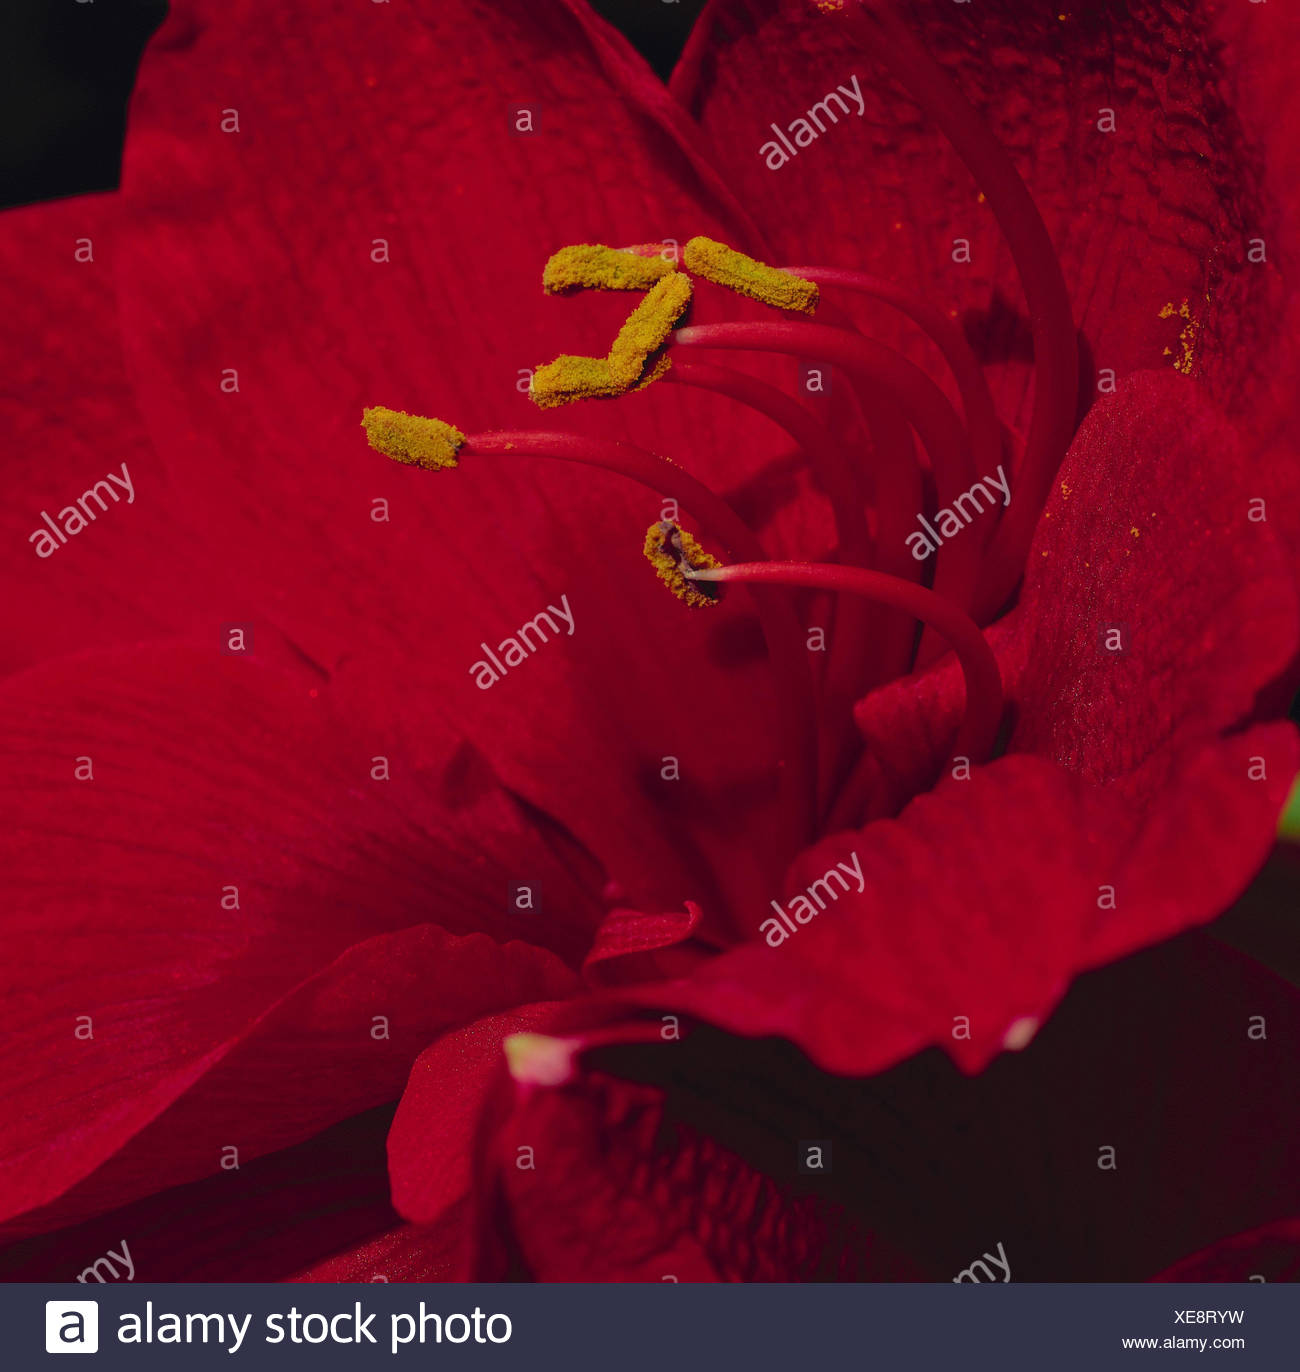 Amaryllis, dust vessels, flower pollen, close up, flower, ornamental flower, ornamental plant, plant, blossom, blossom, red, petals, pollen, polling, Stock Photo